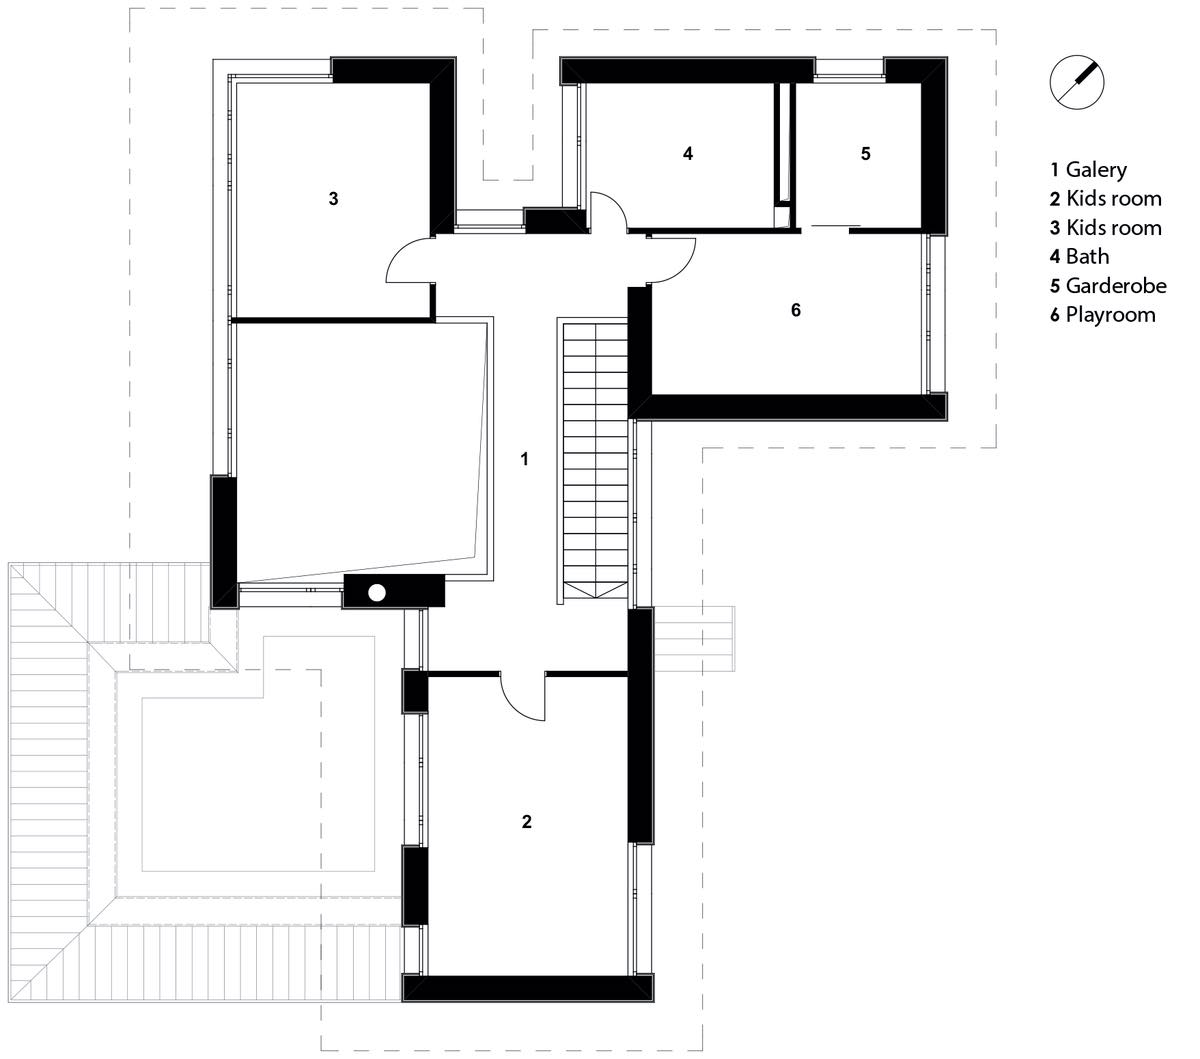 First floor plan of the house